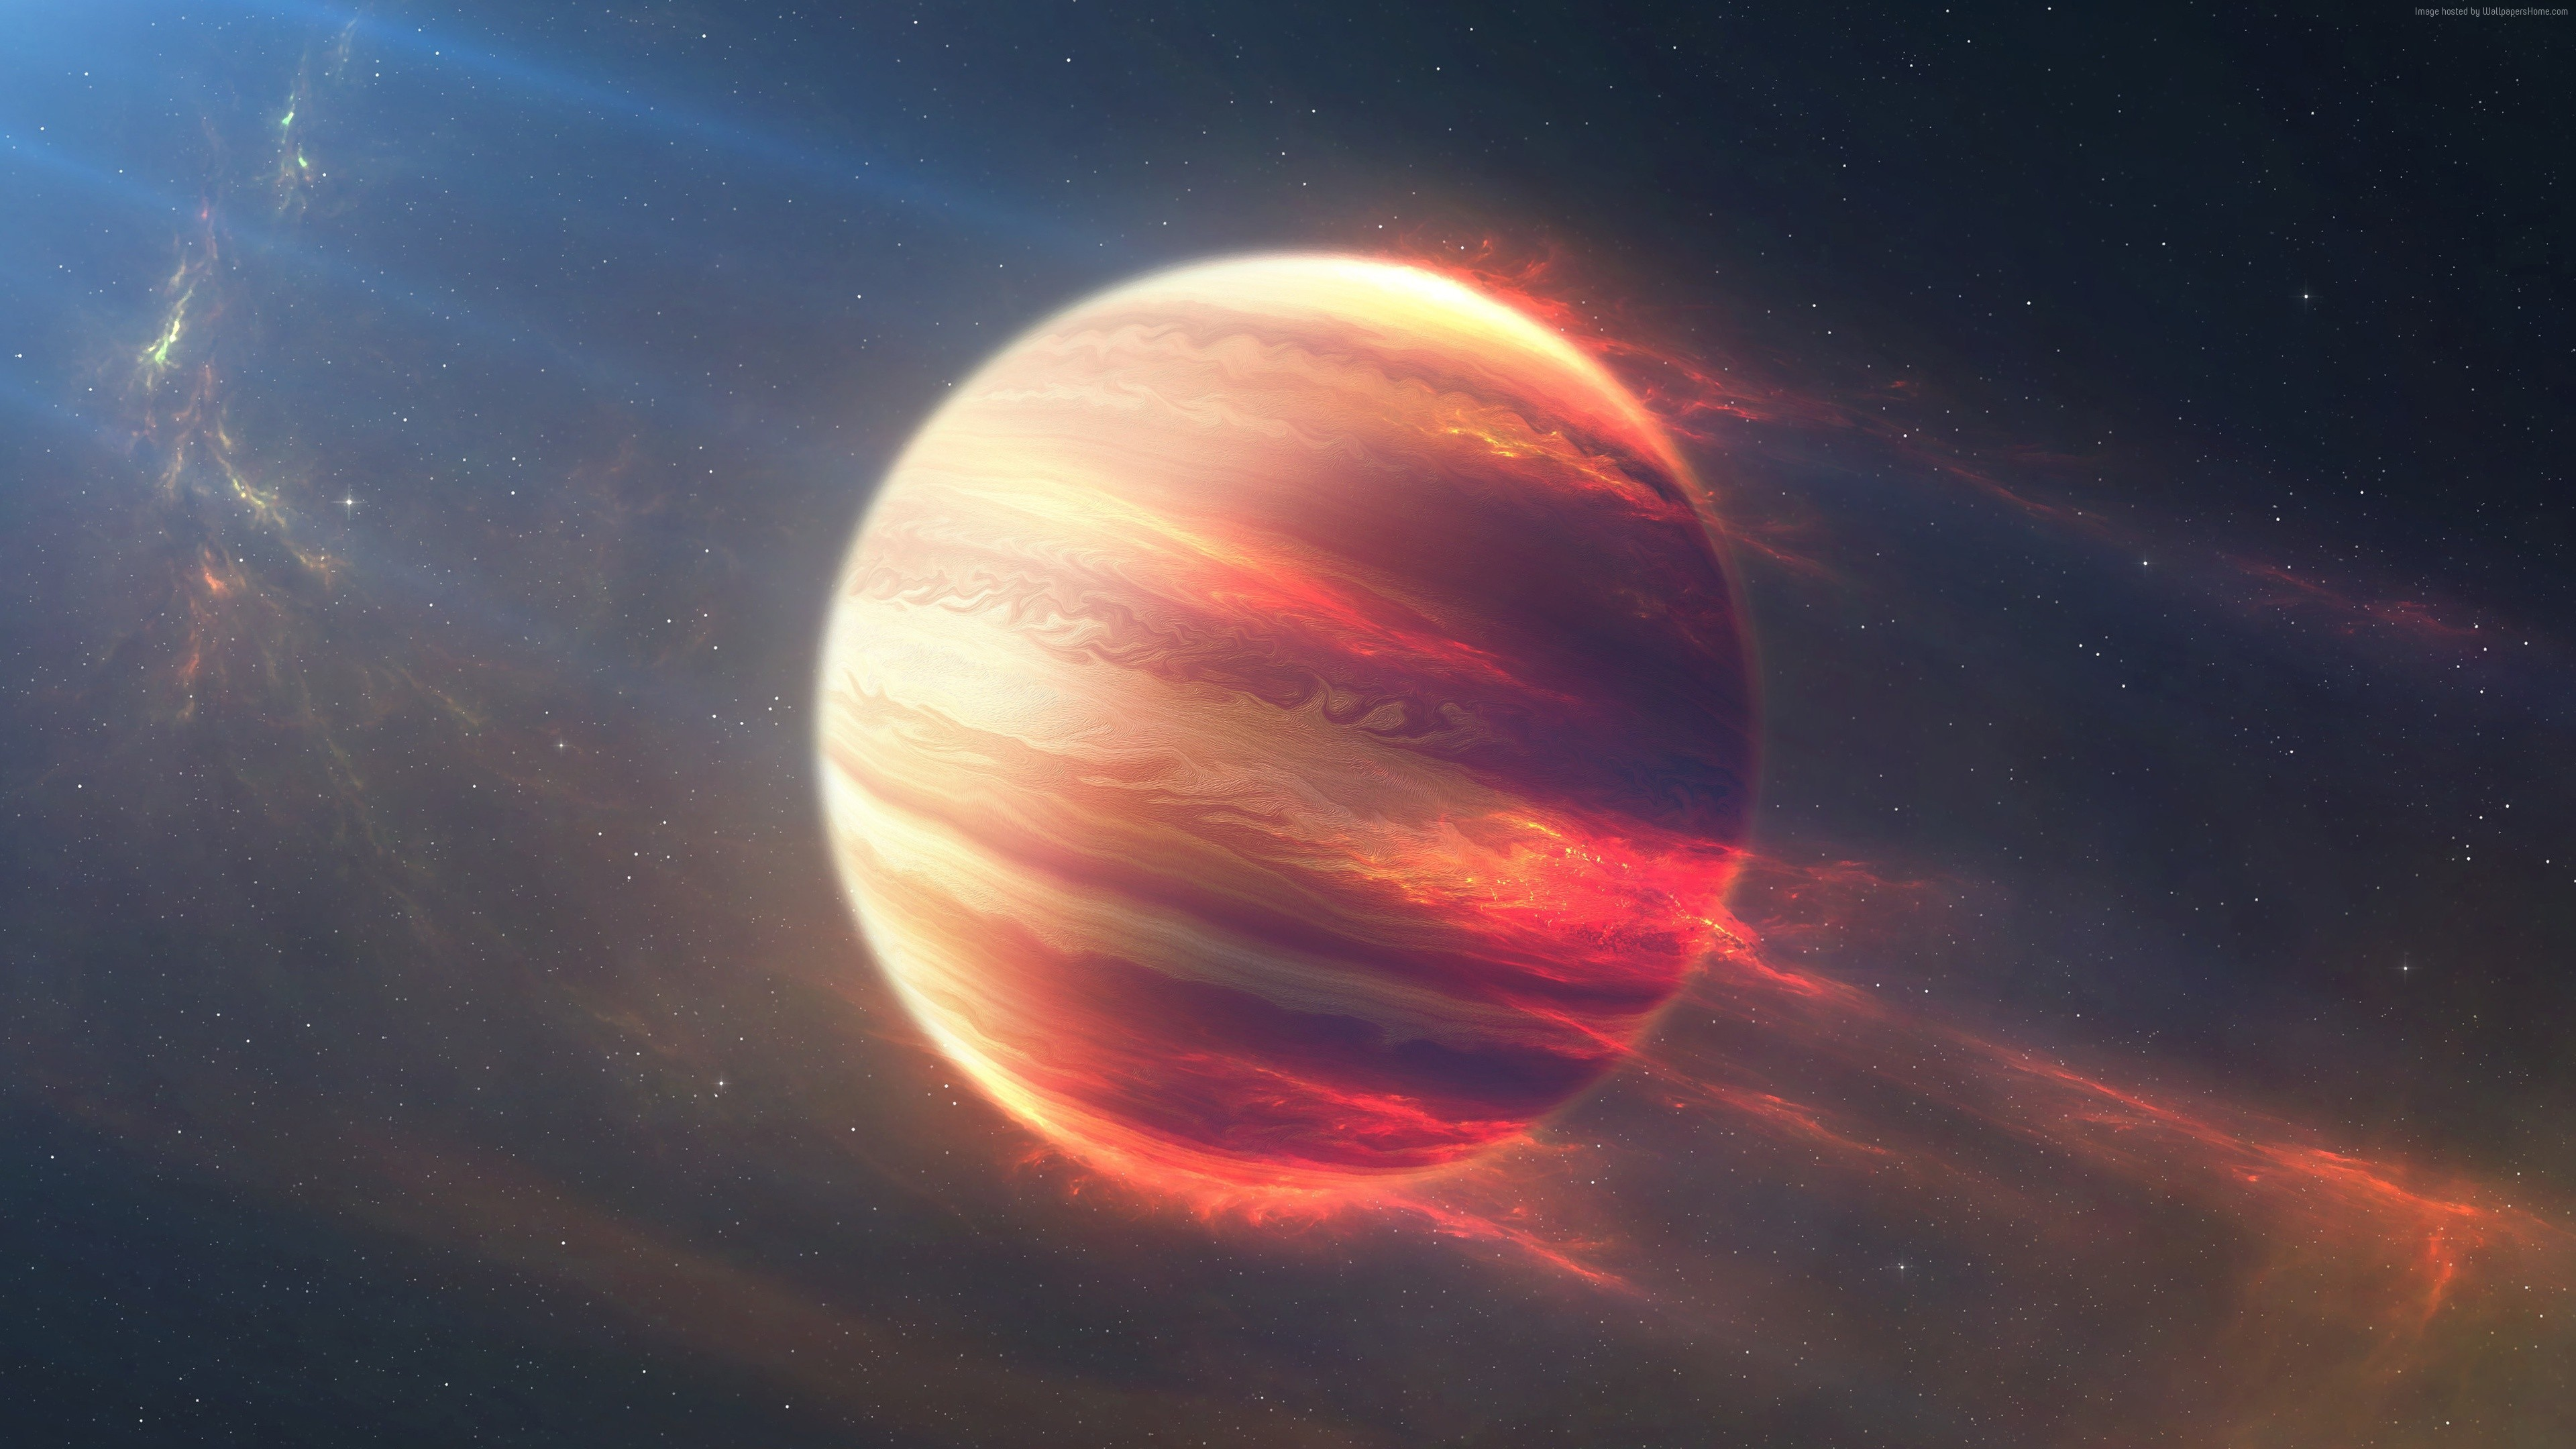 1366x768 space planet 4k 1366x768 resolution hd 4k wallpapers